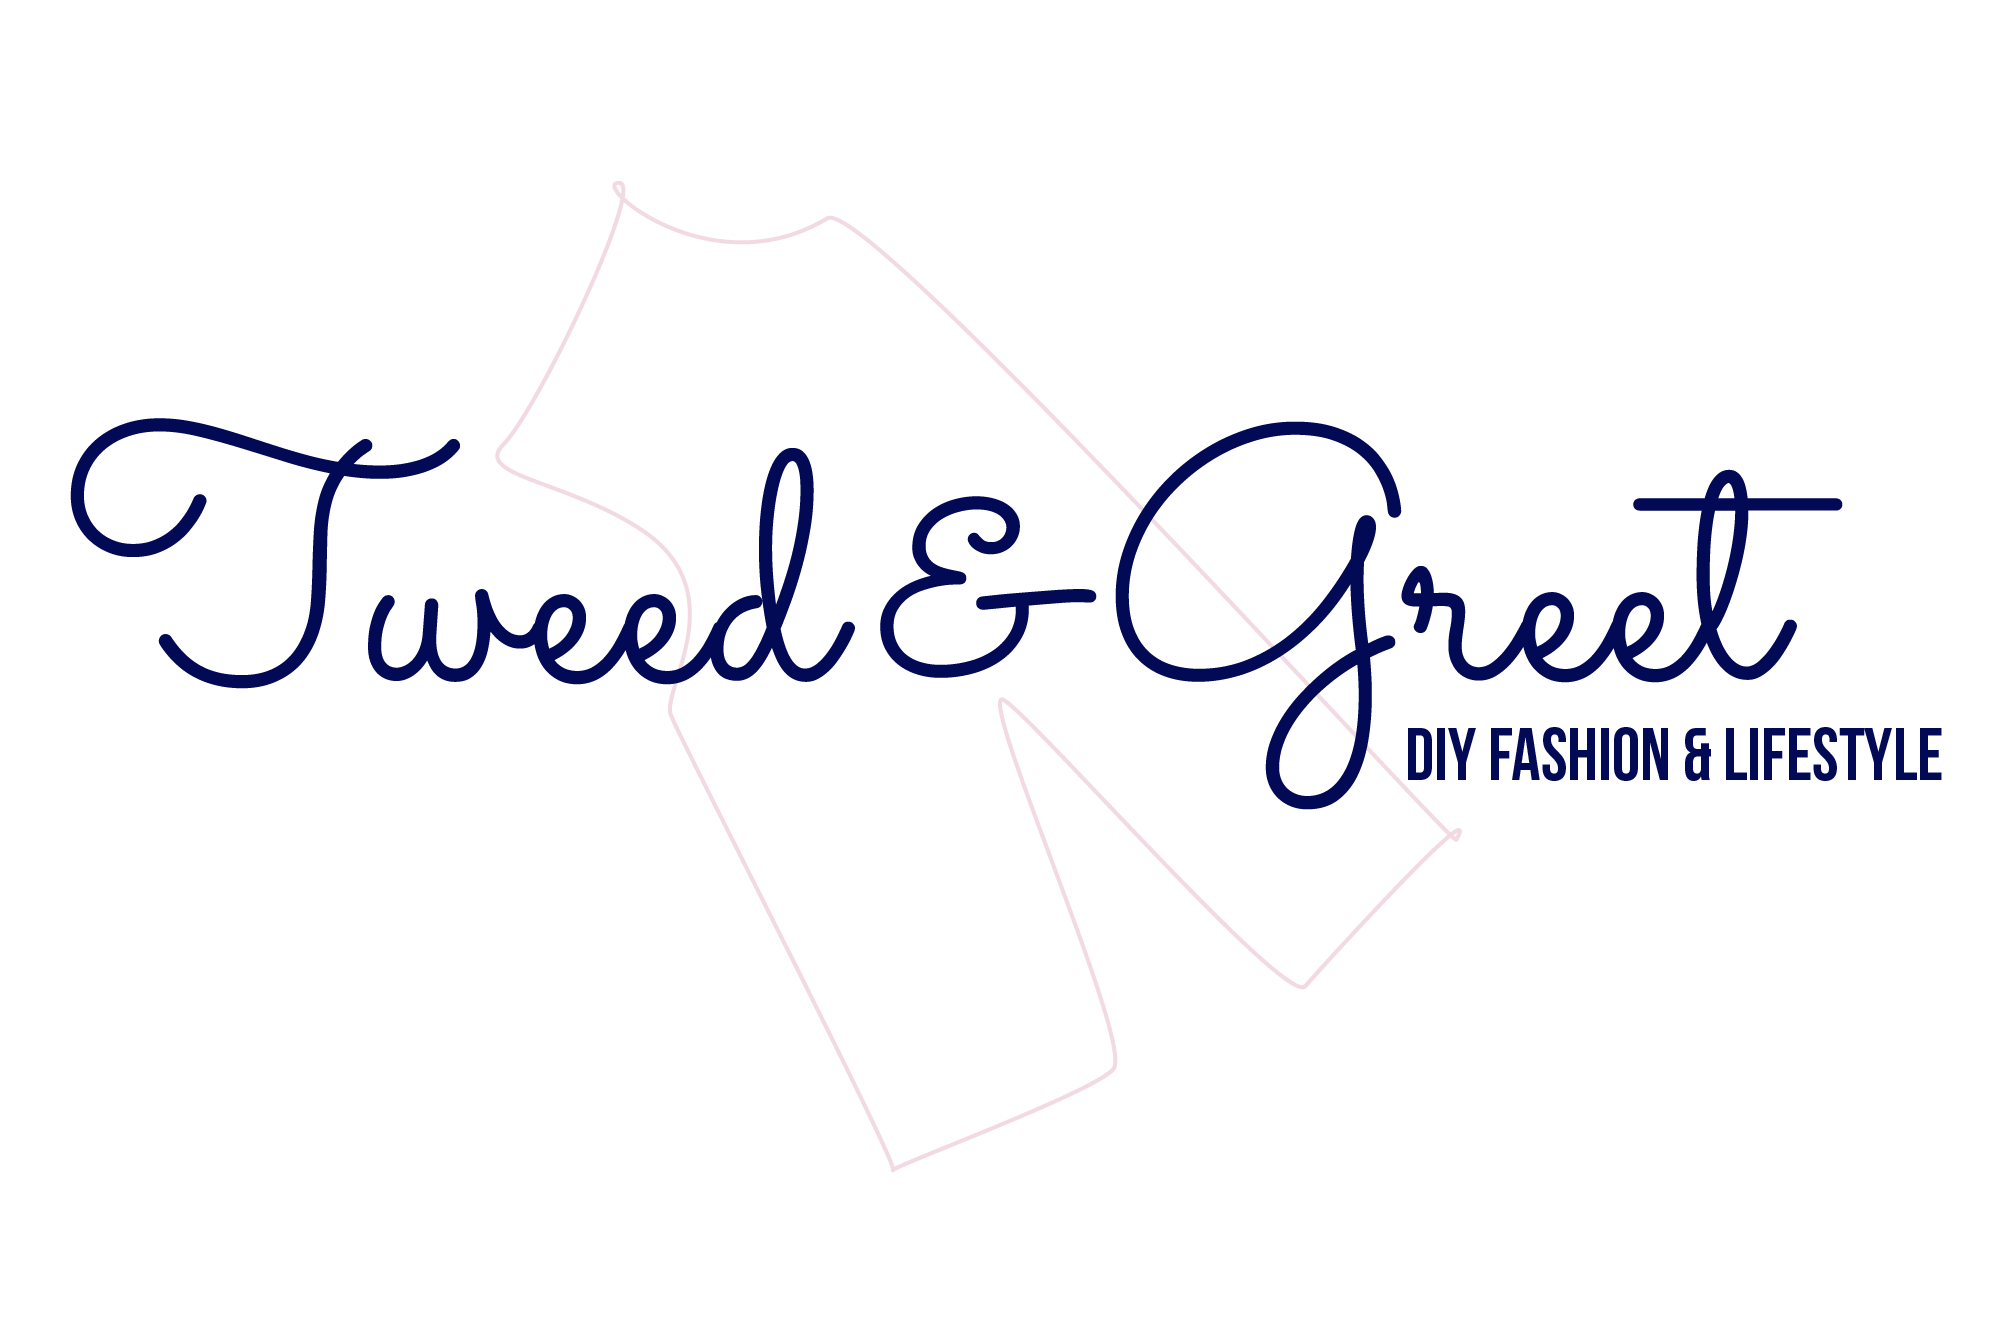 Tweed & Greet